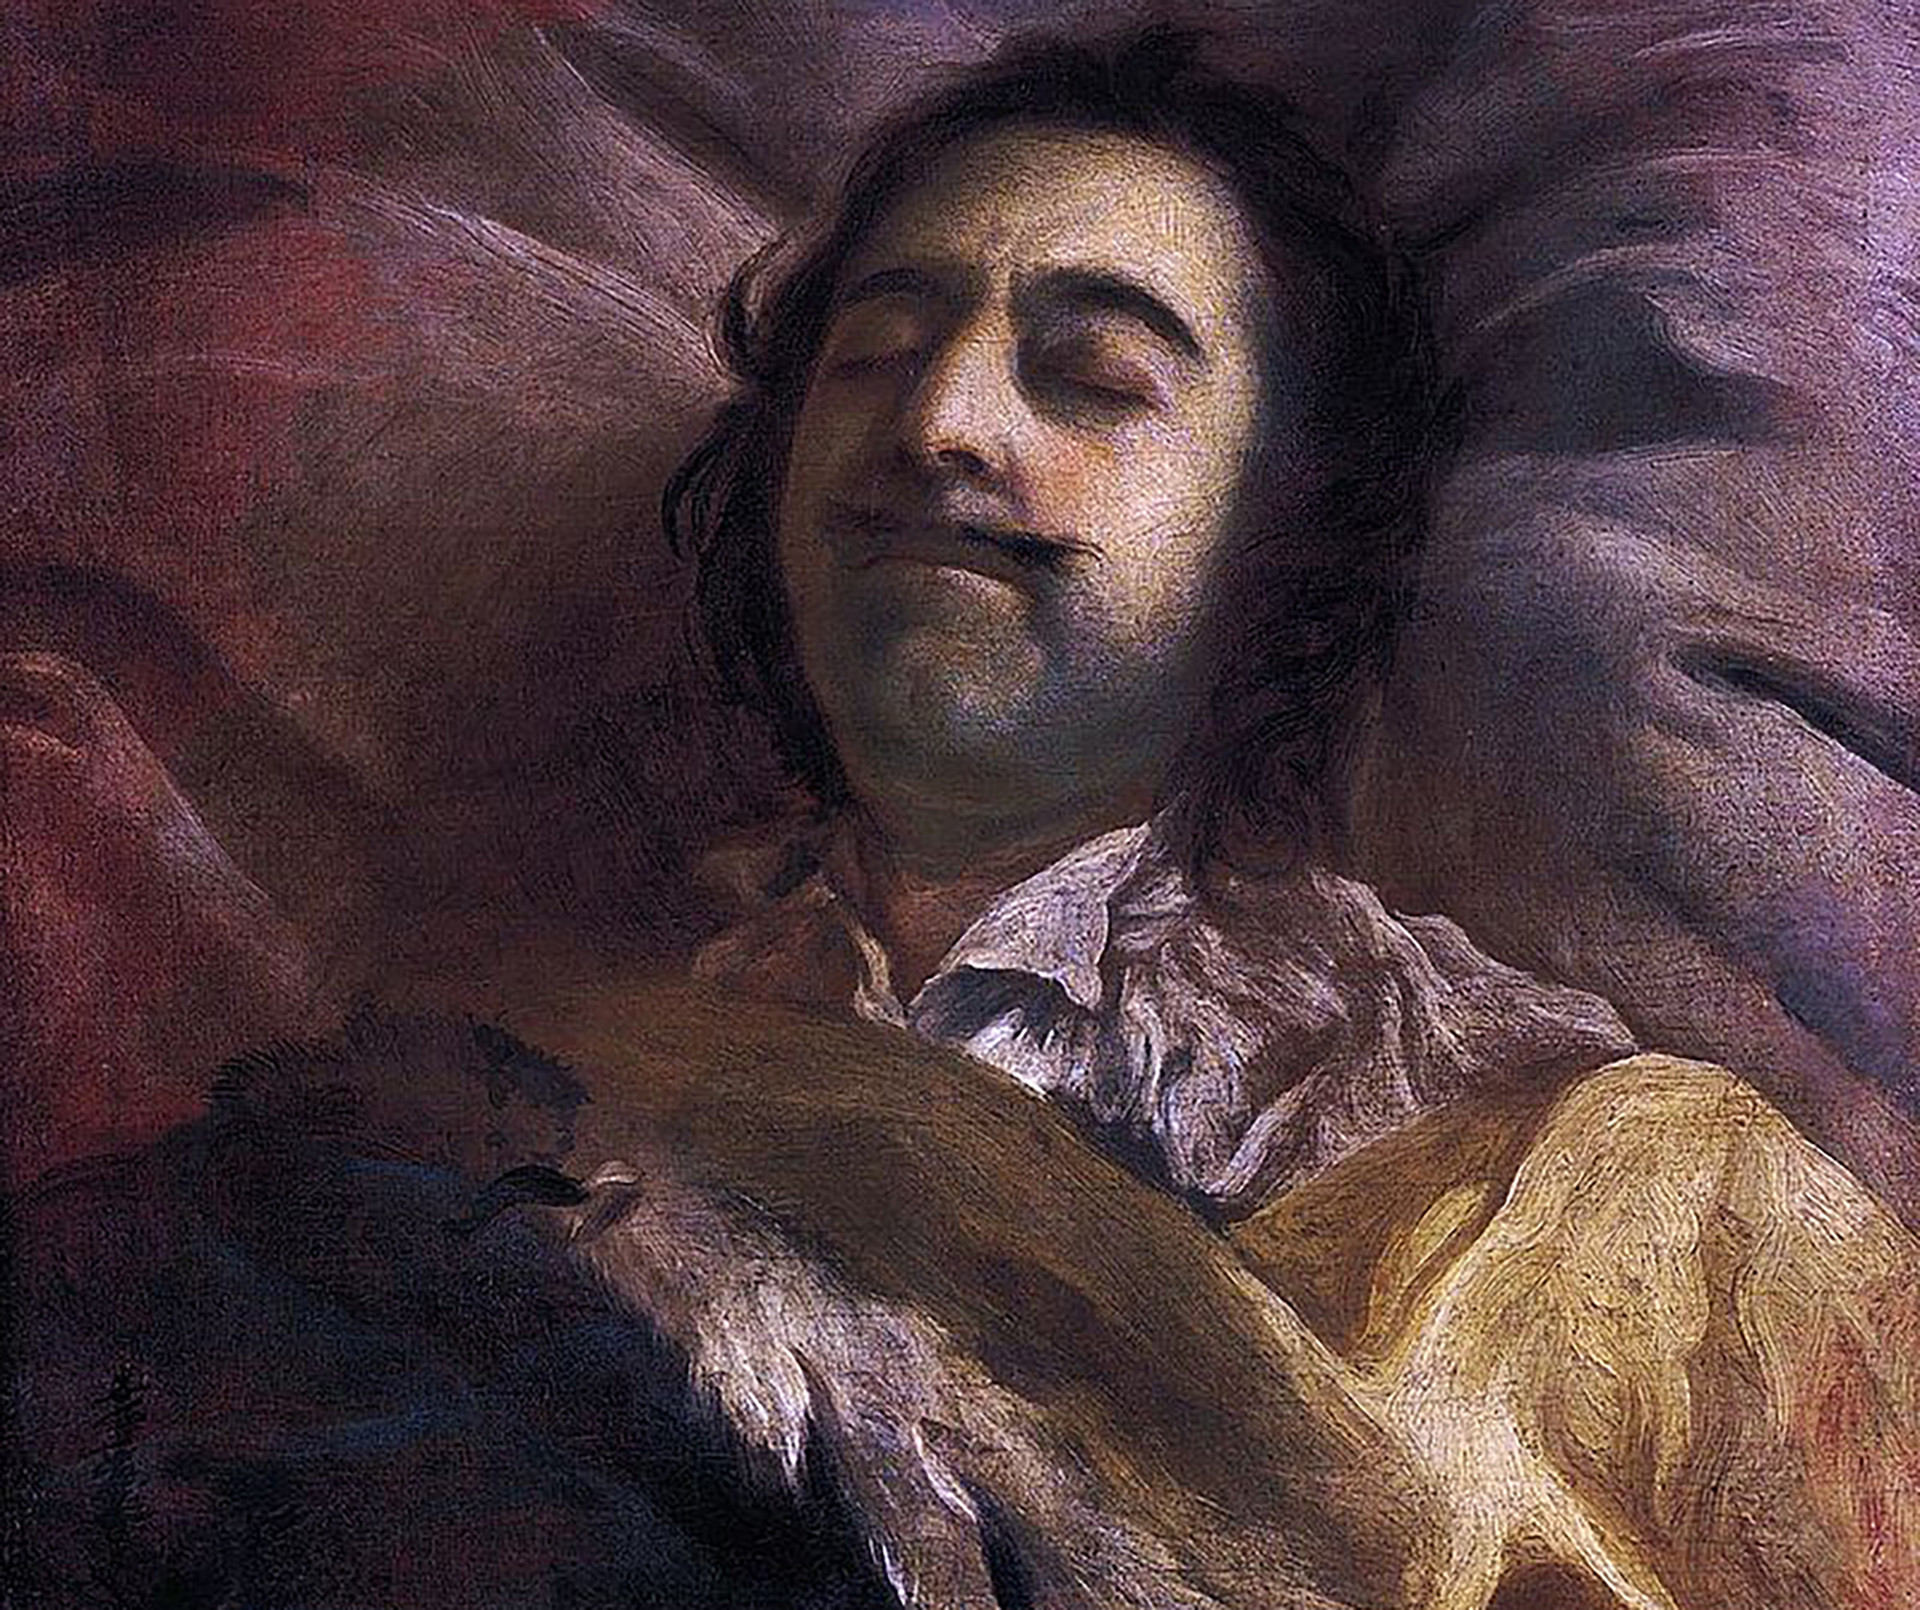 Peter I on his deathbed. Painting by Ivan Nikitin.